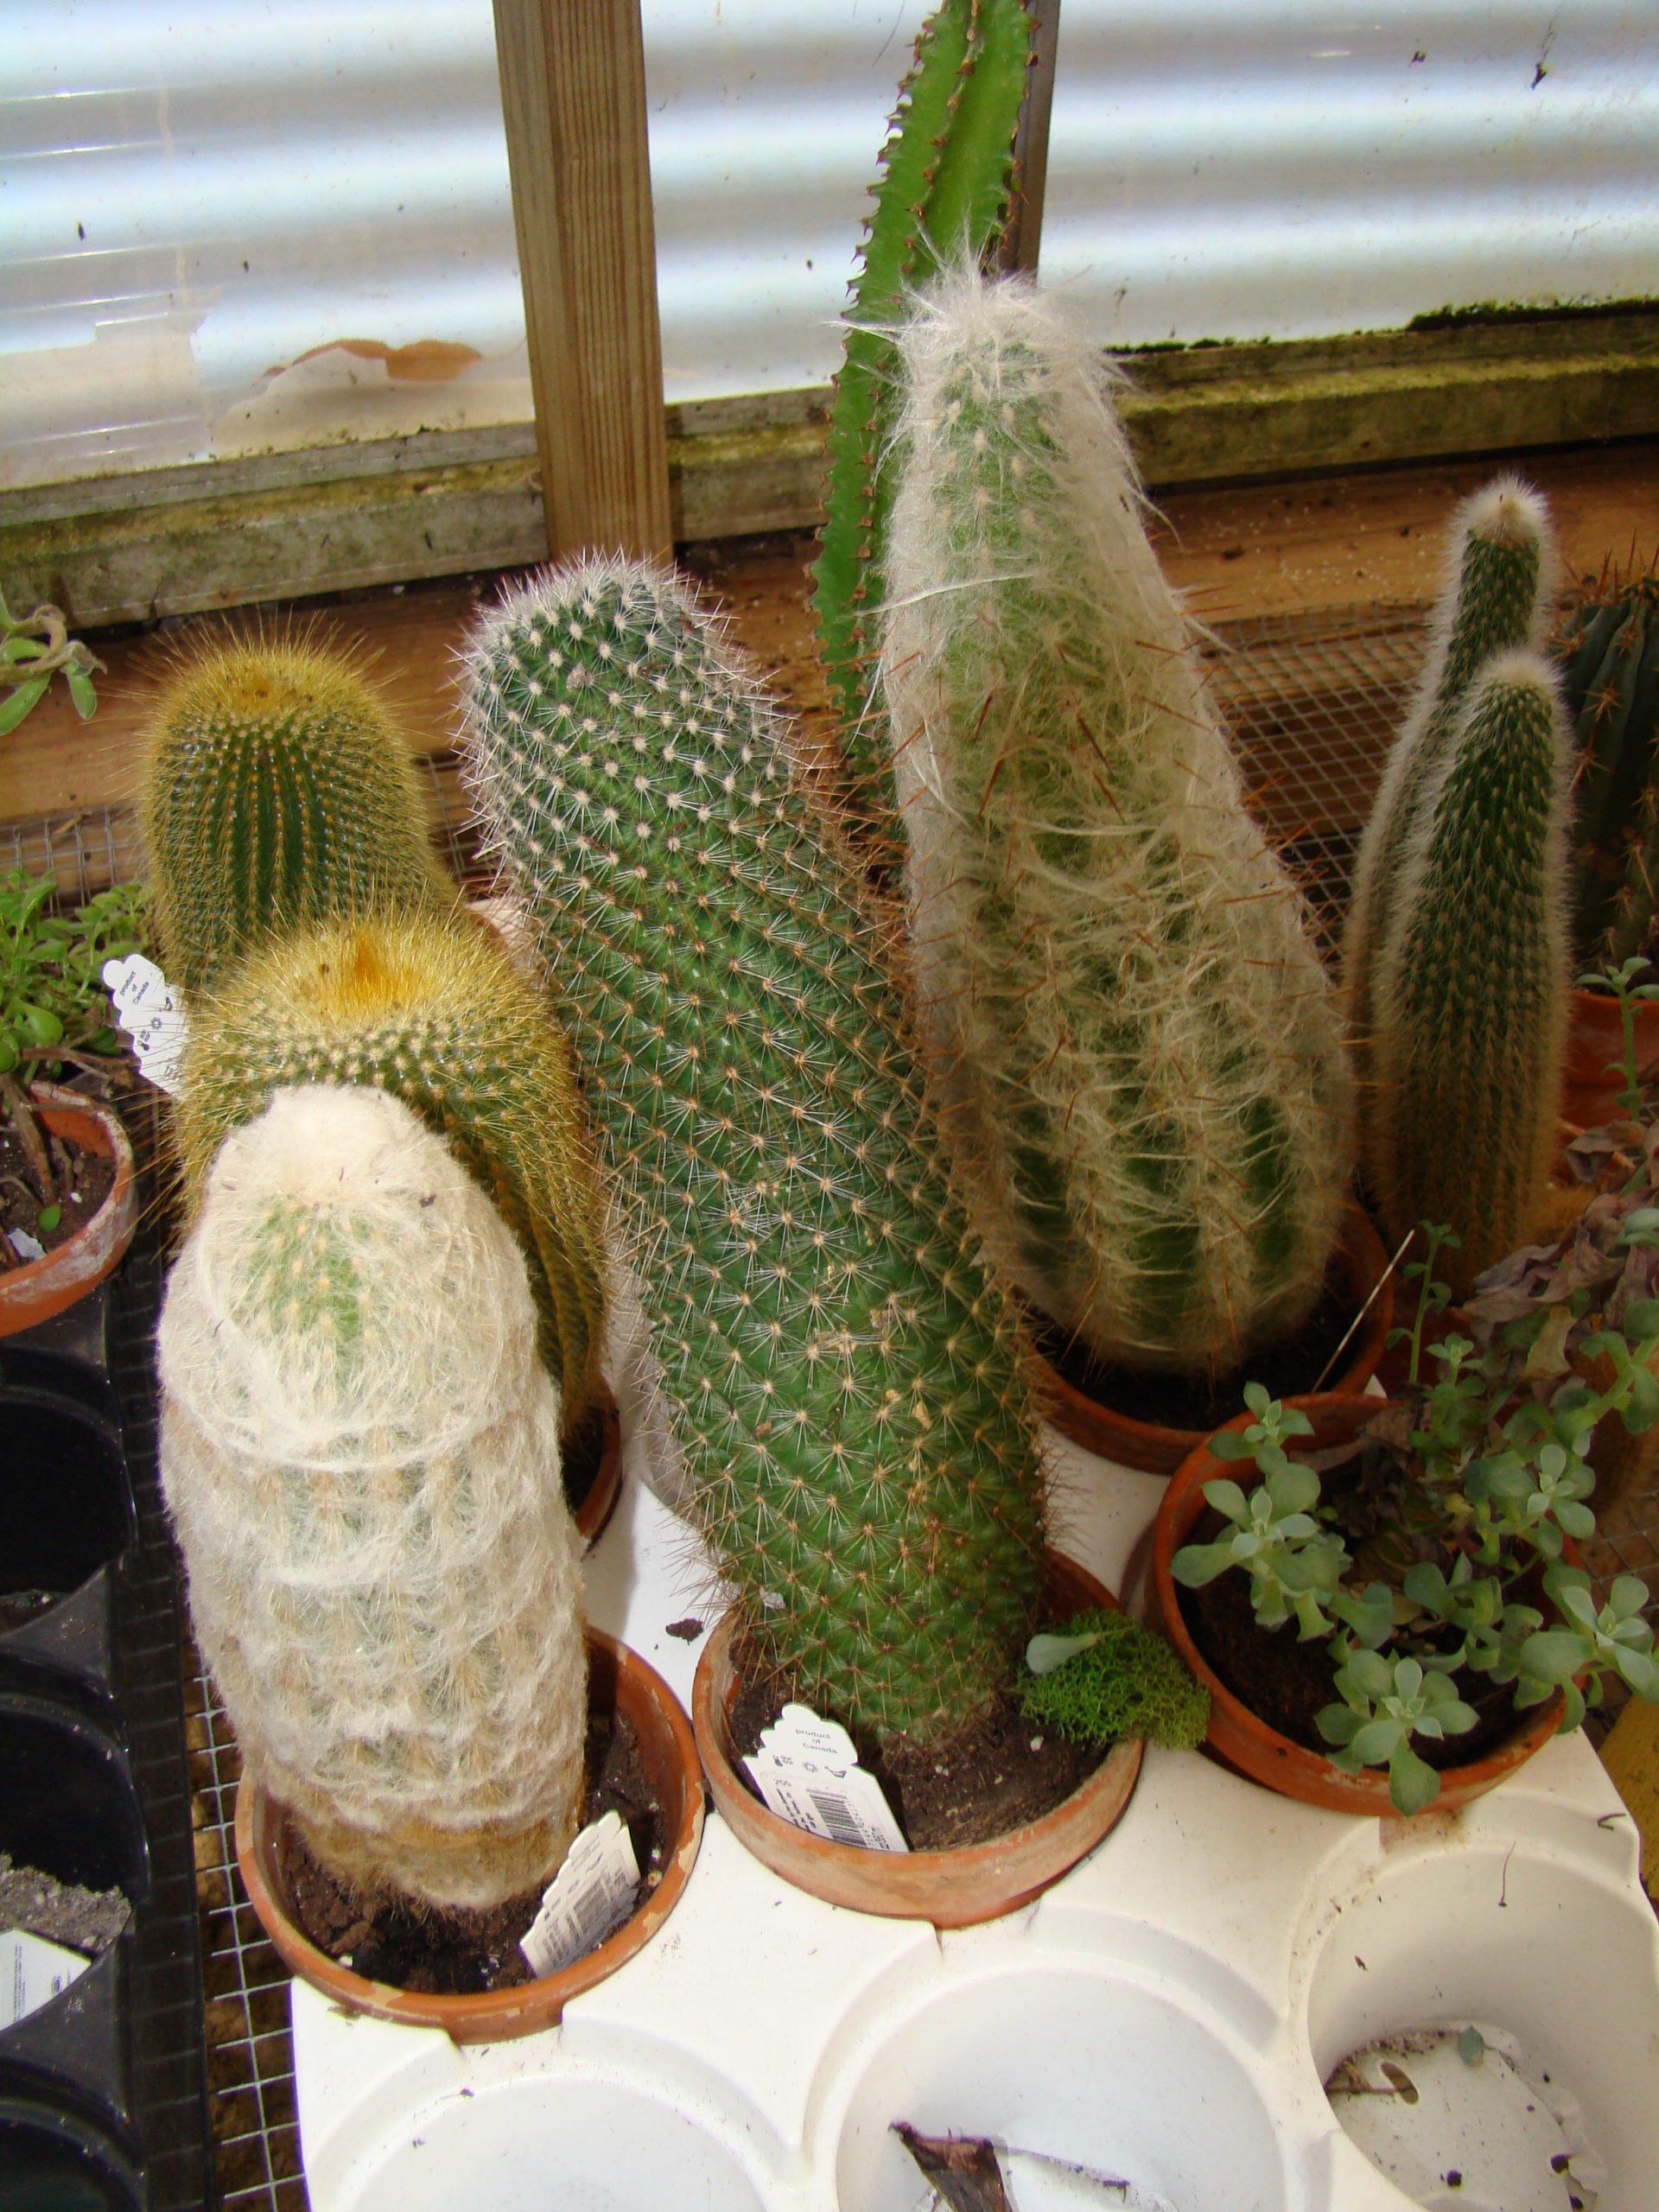 Local garden centers have several varieties of cacti to choose from. There are seven varieties here. The lower right is a succulent, but not a cacti. These are all in small clay pots and would make great holiday gifts (careful wrapping) or collection additions.